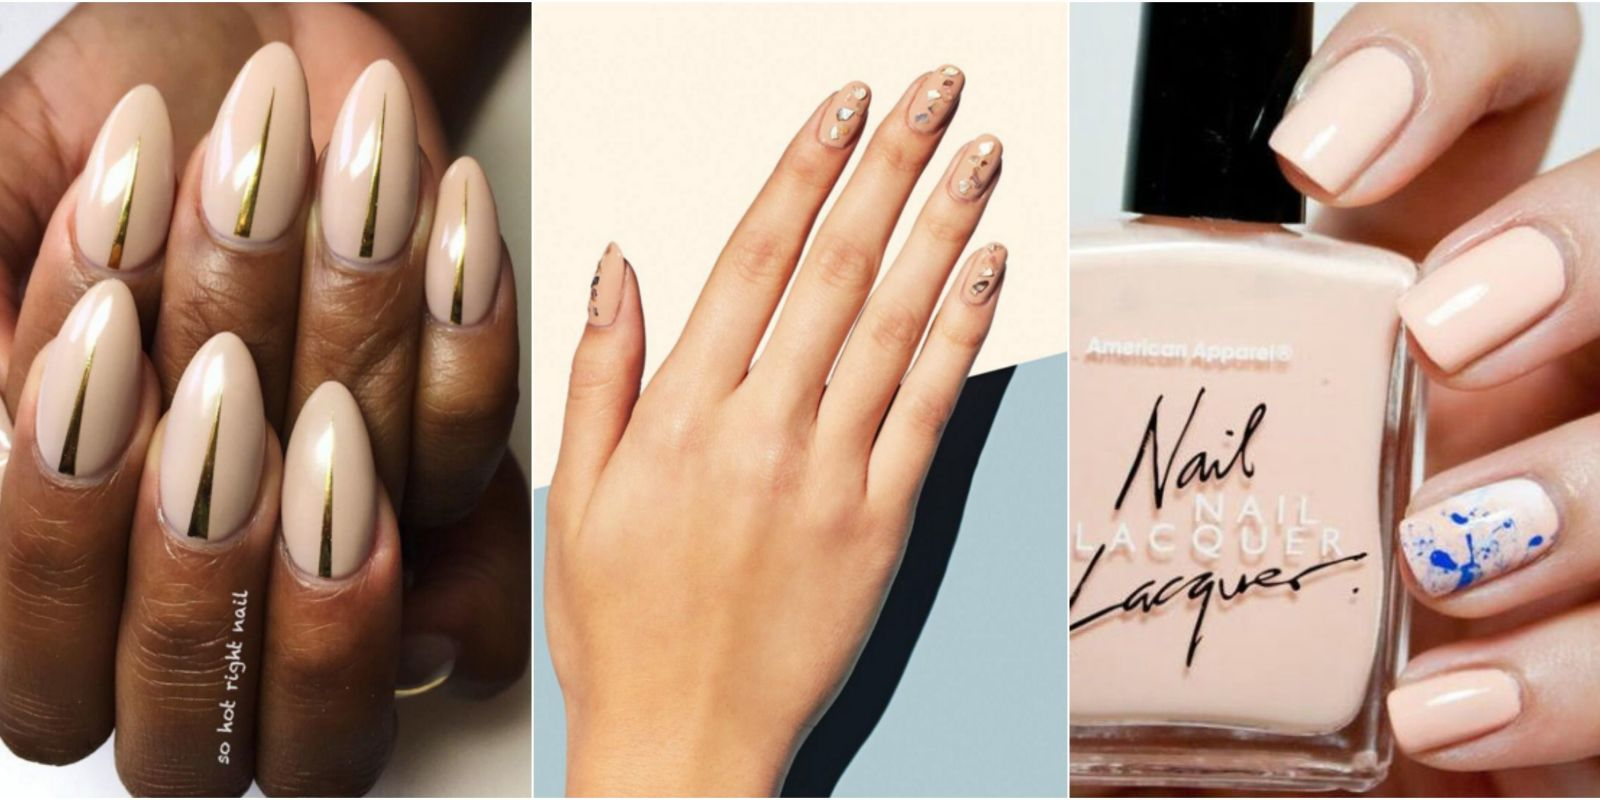 Subtle ways to upgrade your nude manicure easy nail art ideas subtle ways to upgrade your nude manicure easy nail art ideas for nude nail polish prinsesfo Images